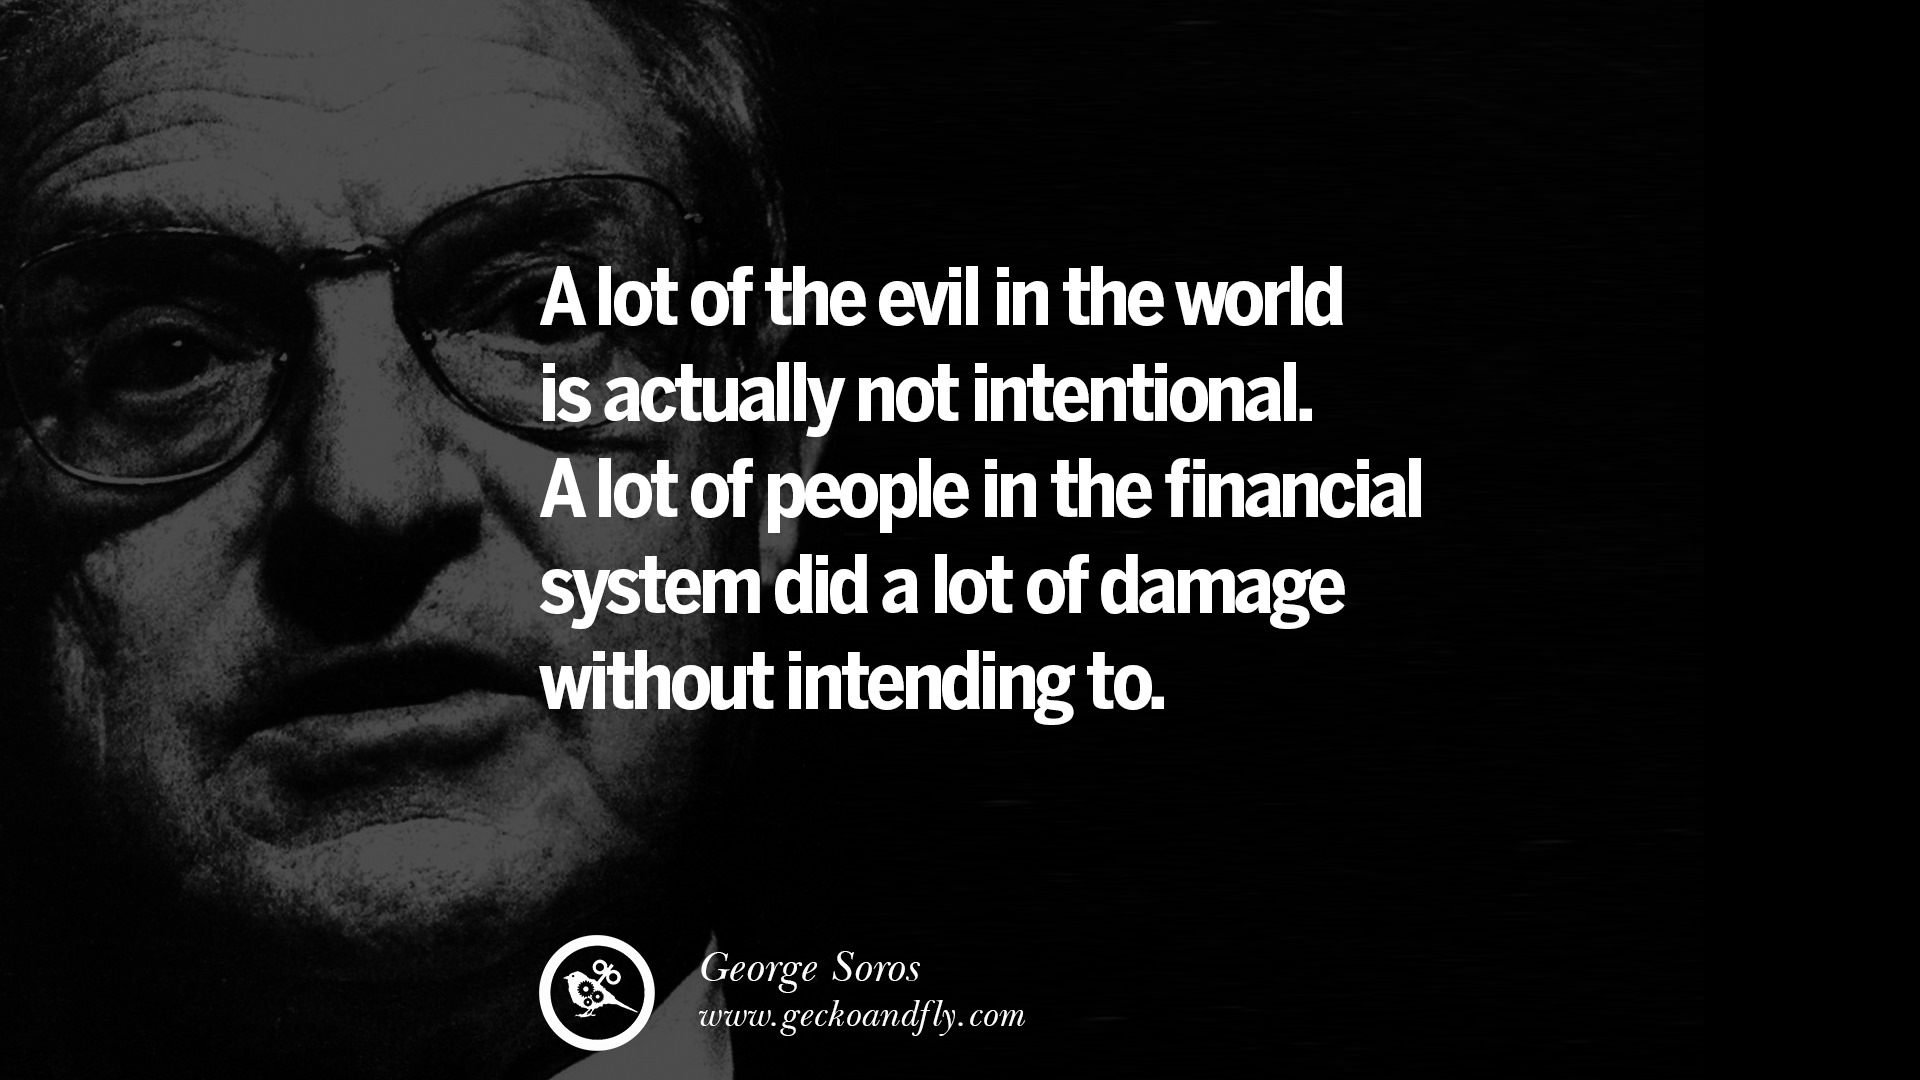 Supporting Quotes 20 Famous George Soros Quotes On Financial Economy Democracy And